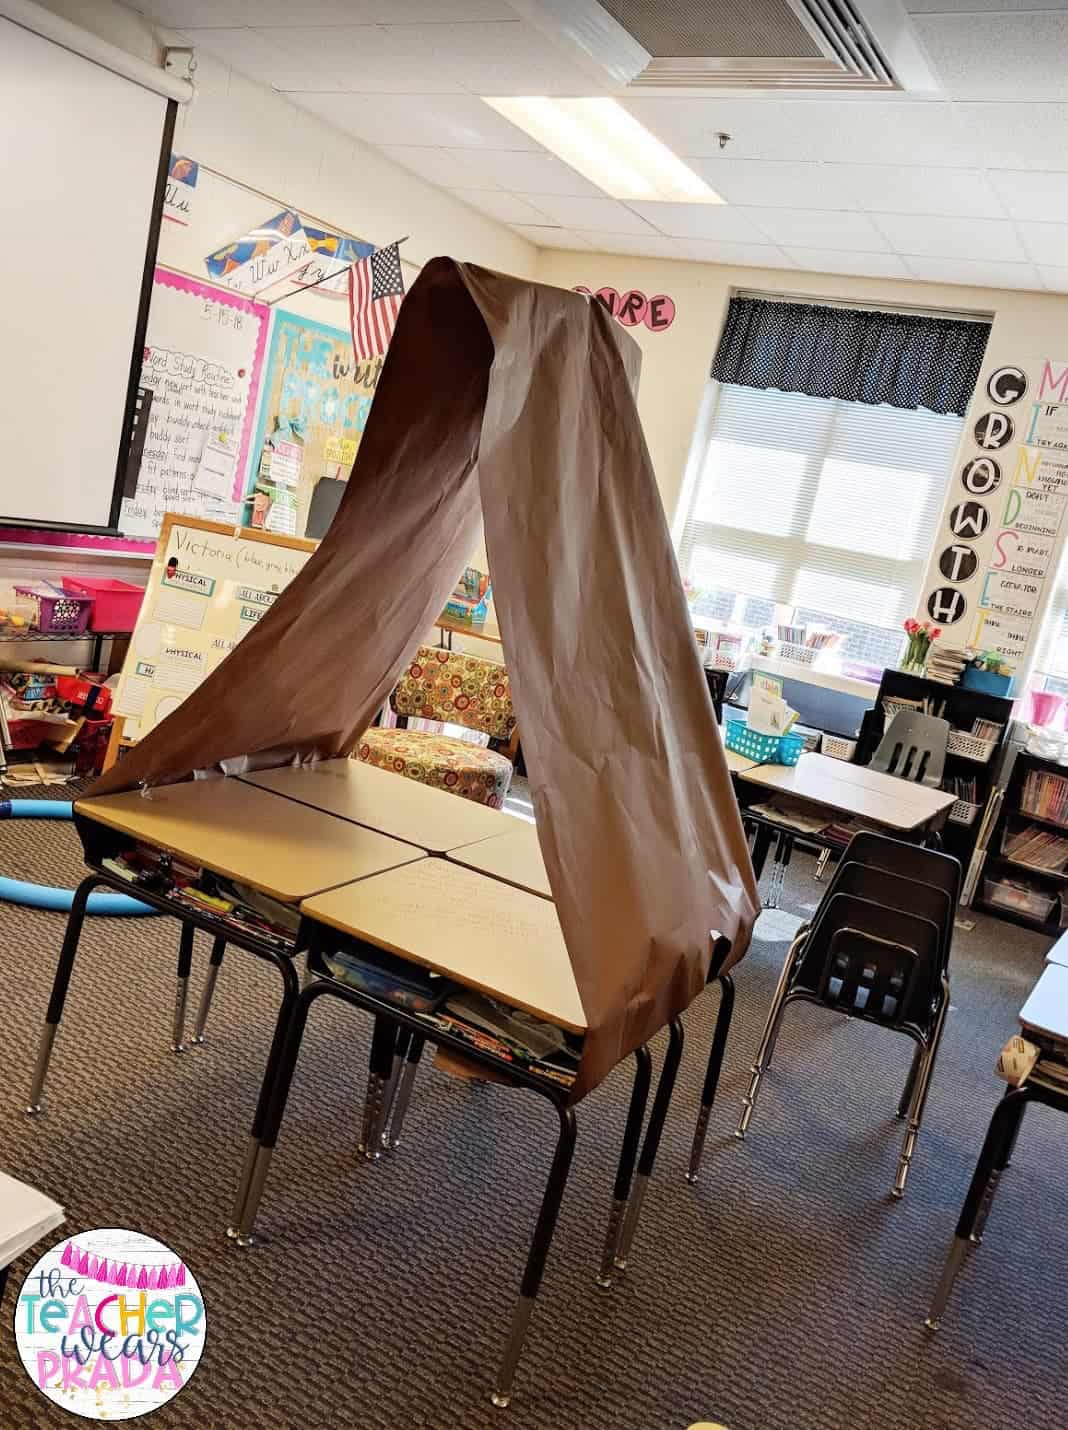 My students engage in various math and reading camping themed classroom activities as one of our end of the school year activities! They loved having their classroom set up as a campsite for the week.